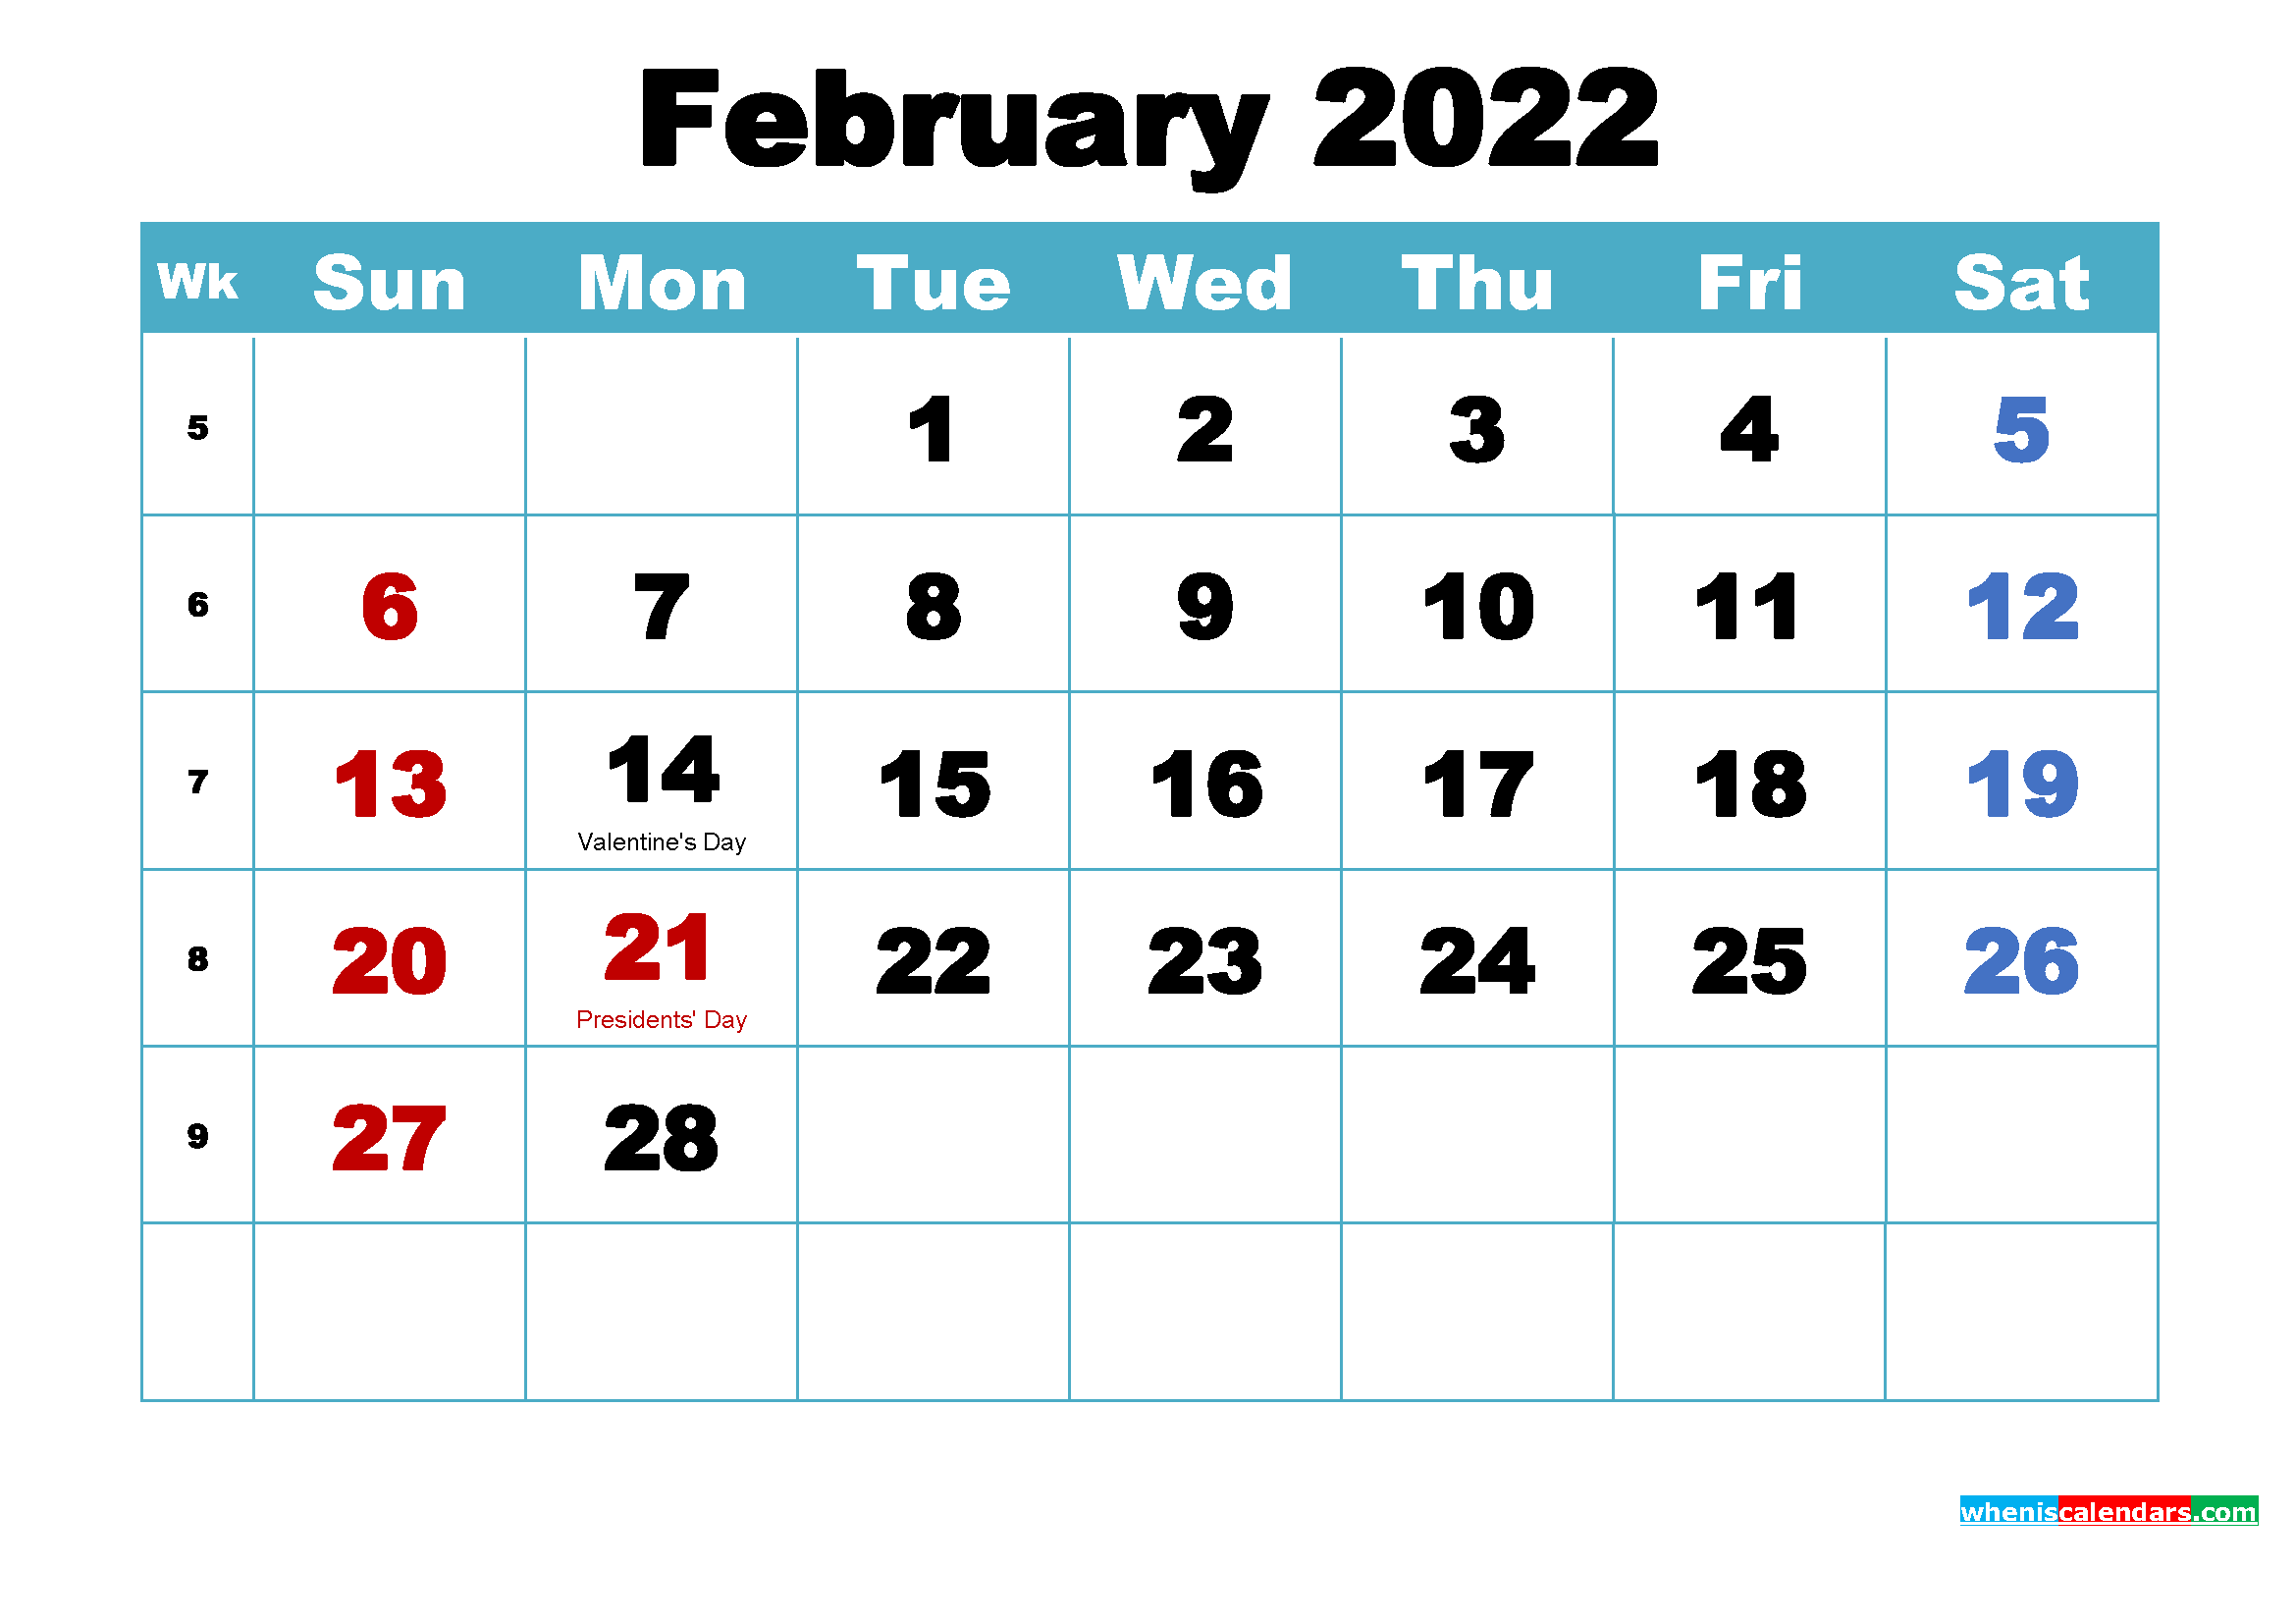 February 2022 Calendar Wallpaper Free Download